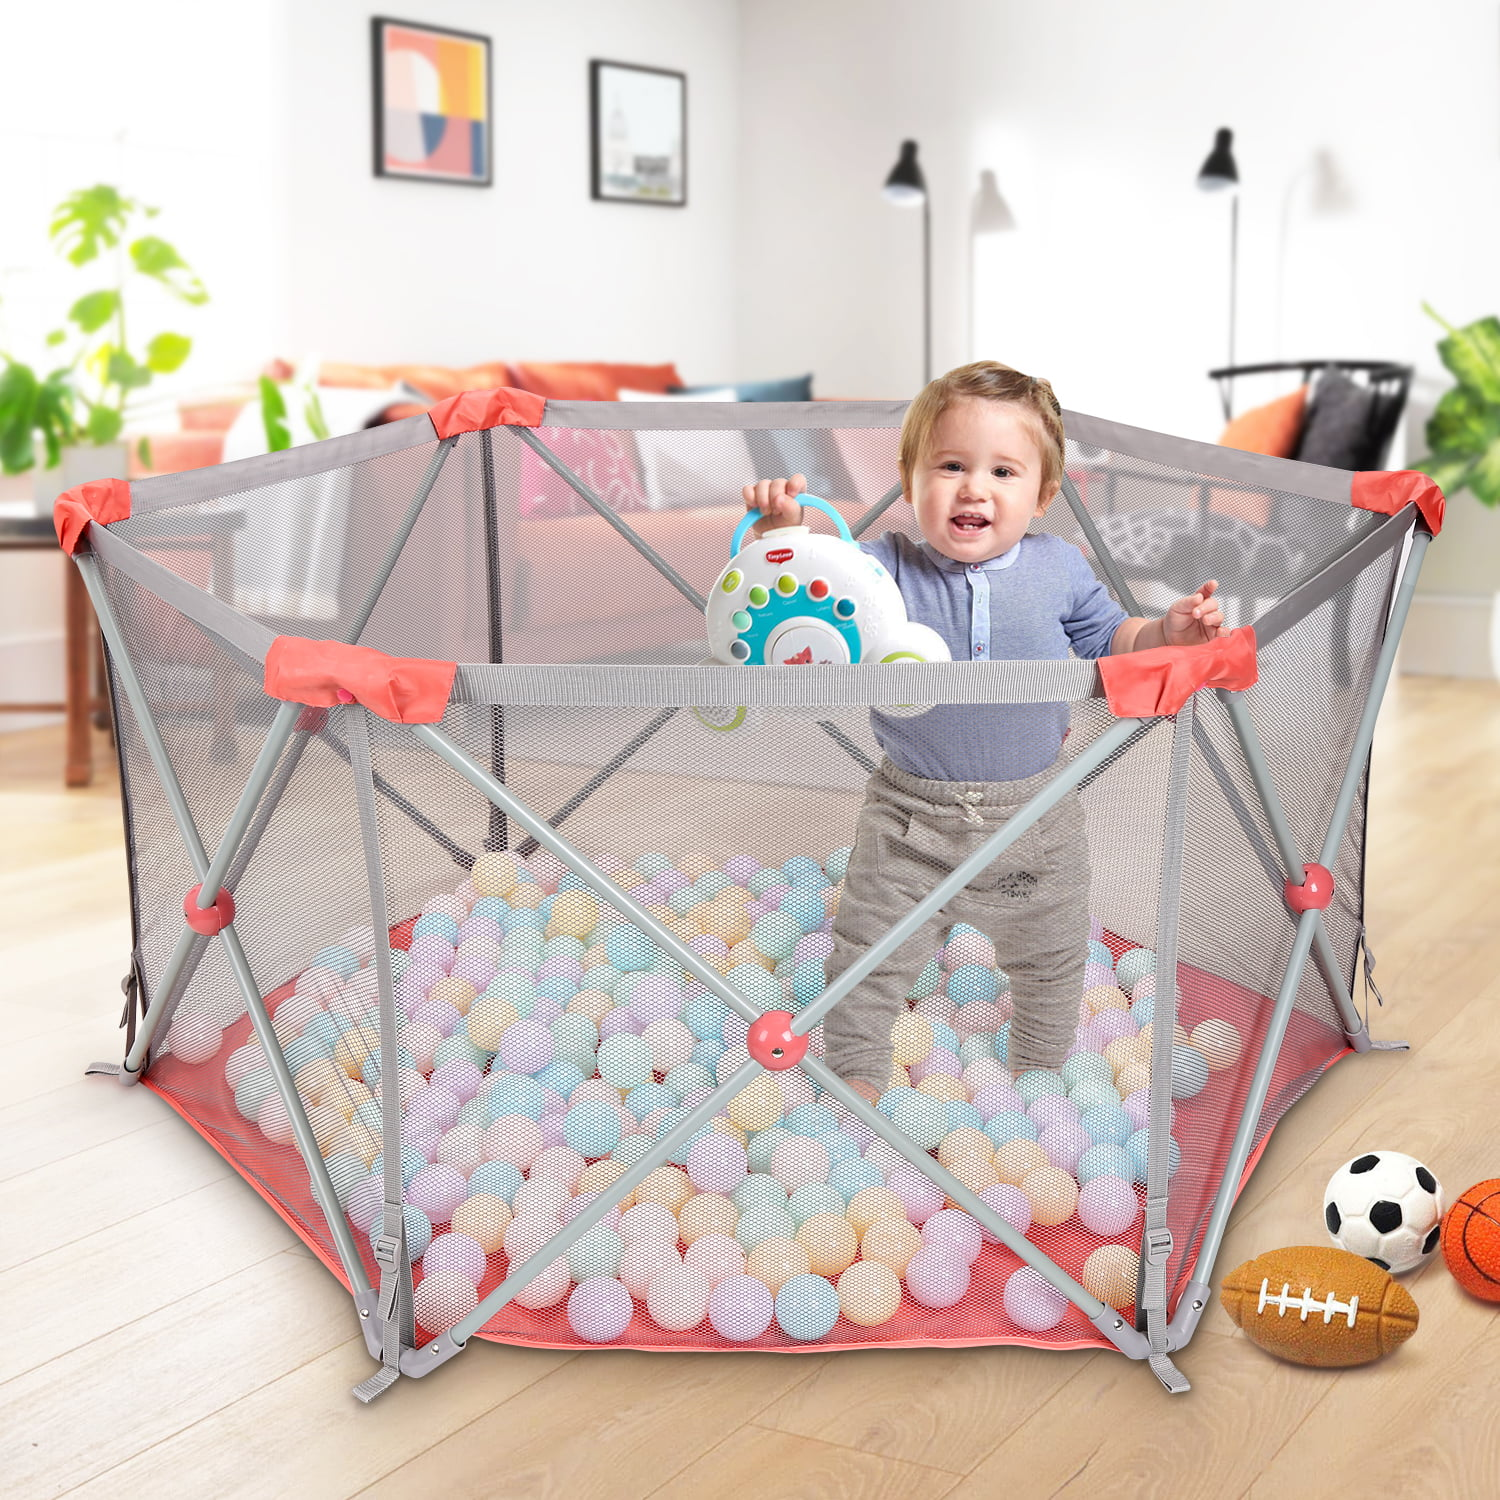 Childrens Play Fence Portable Child Playpen Rectangle Toddlers Play Yard with Door Activity Center Child Play Game Fence Anti-Fall Play Pen,Safe and Secure Color : Red